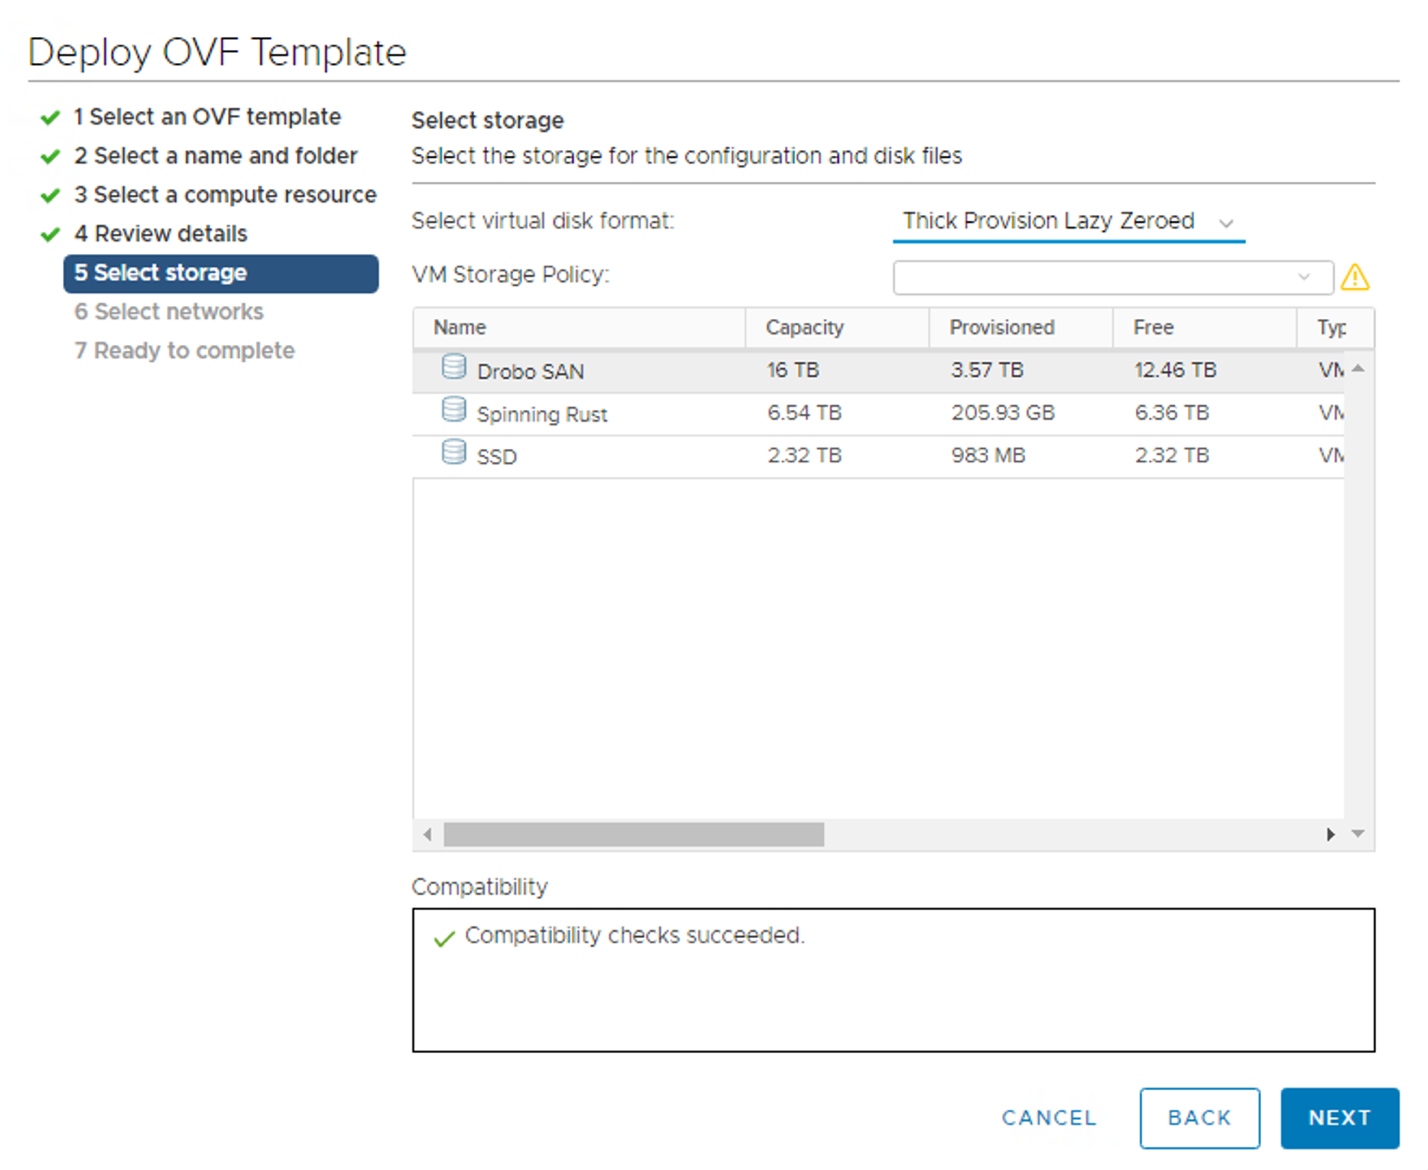 Figure 9. Selecting storage for the VM